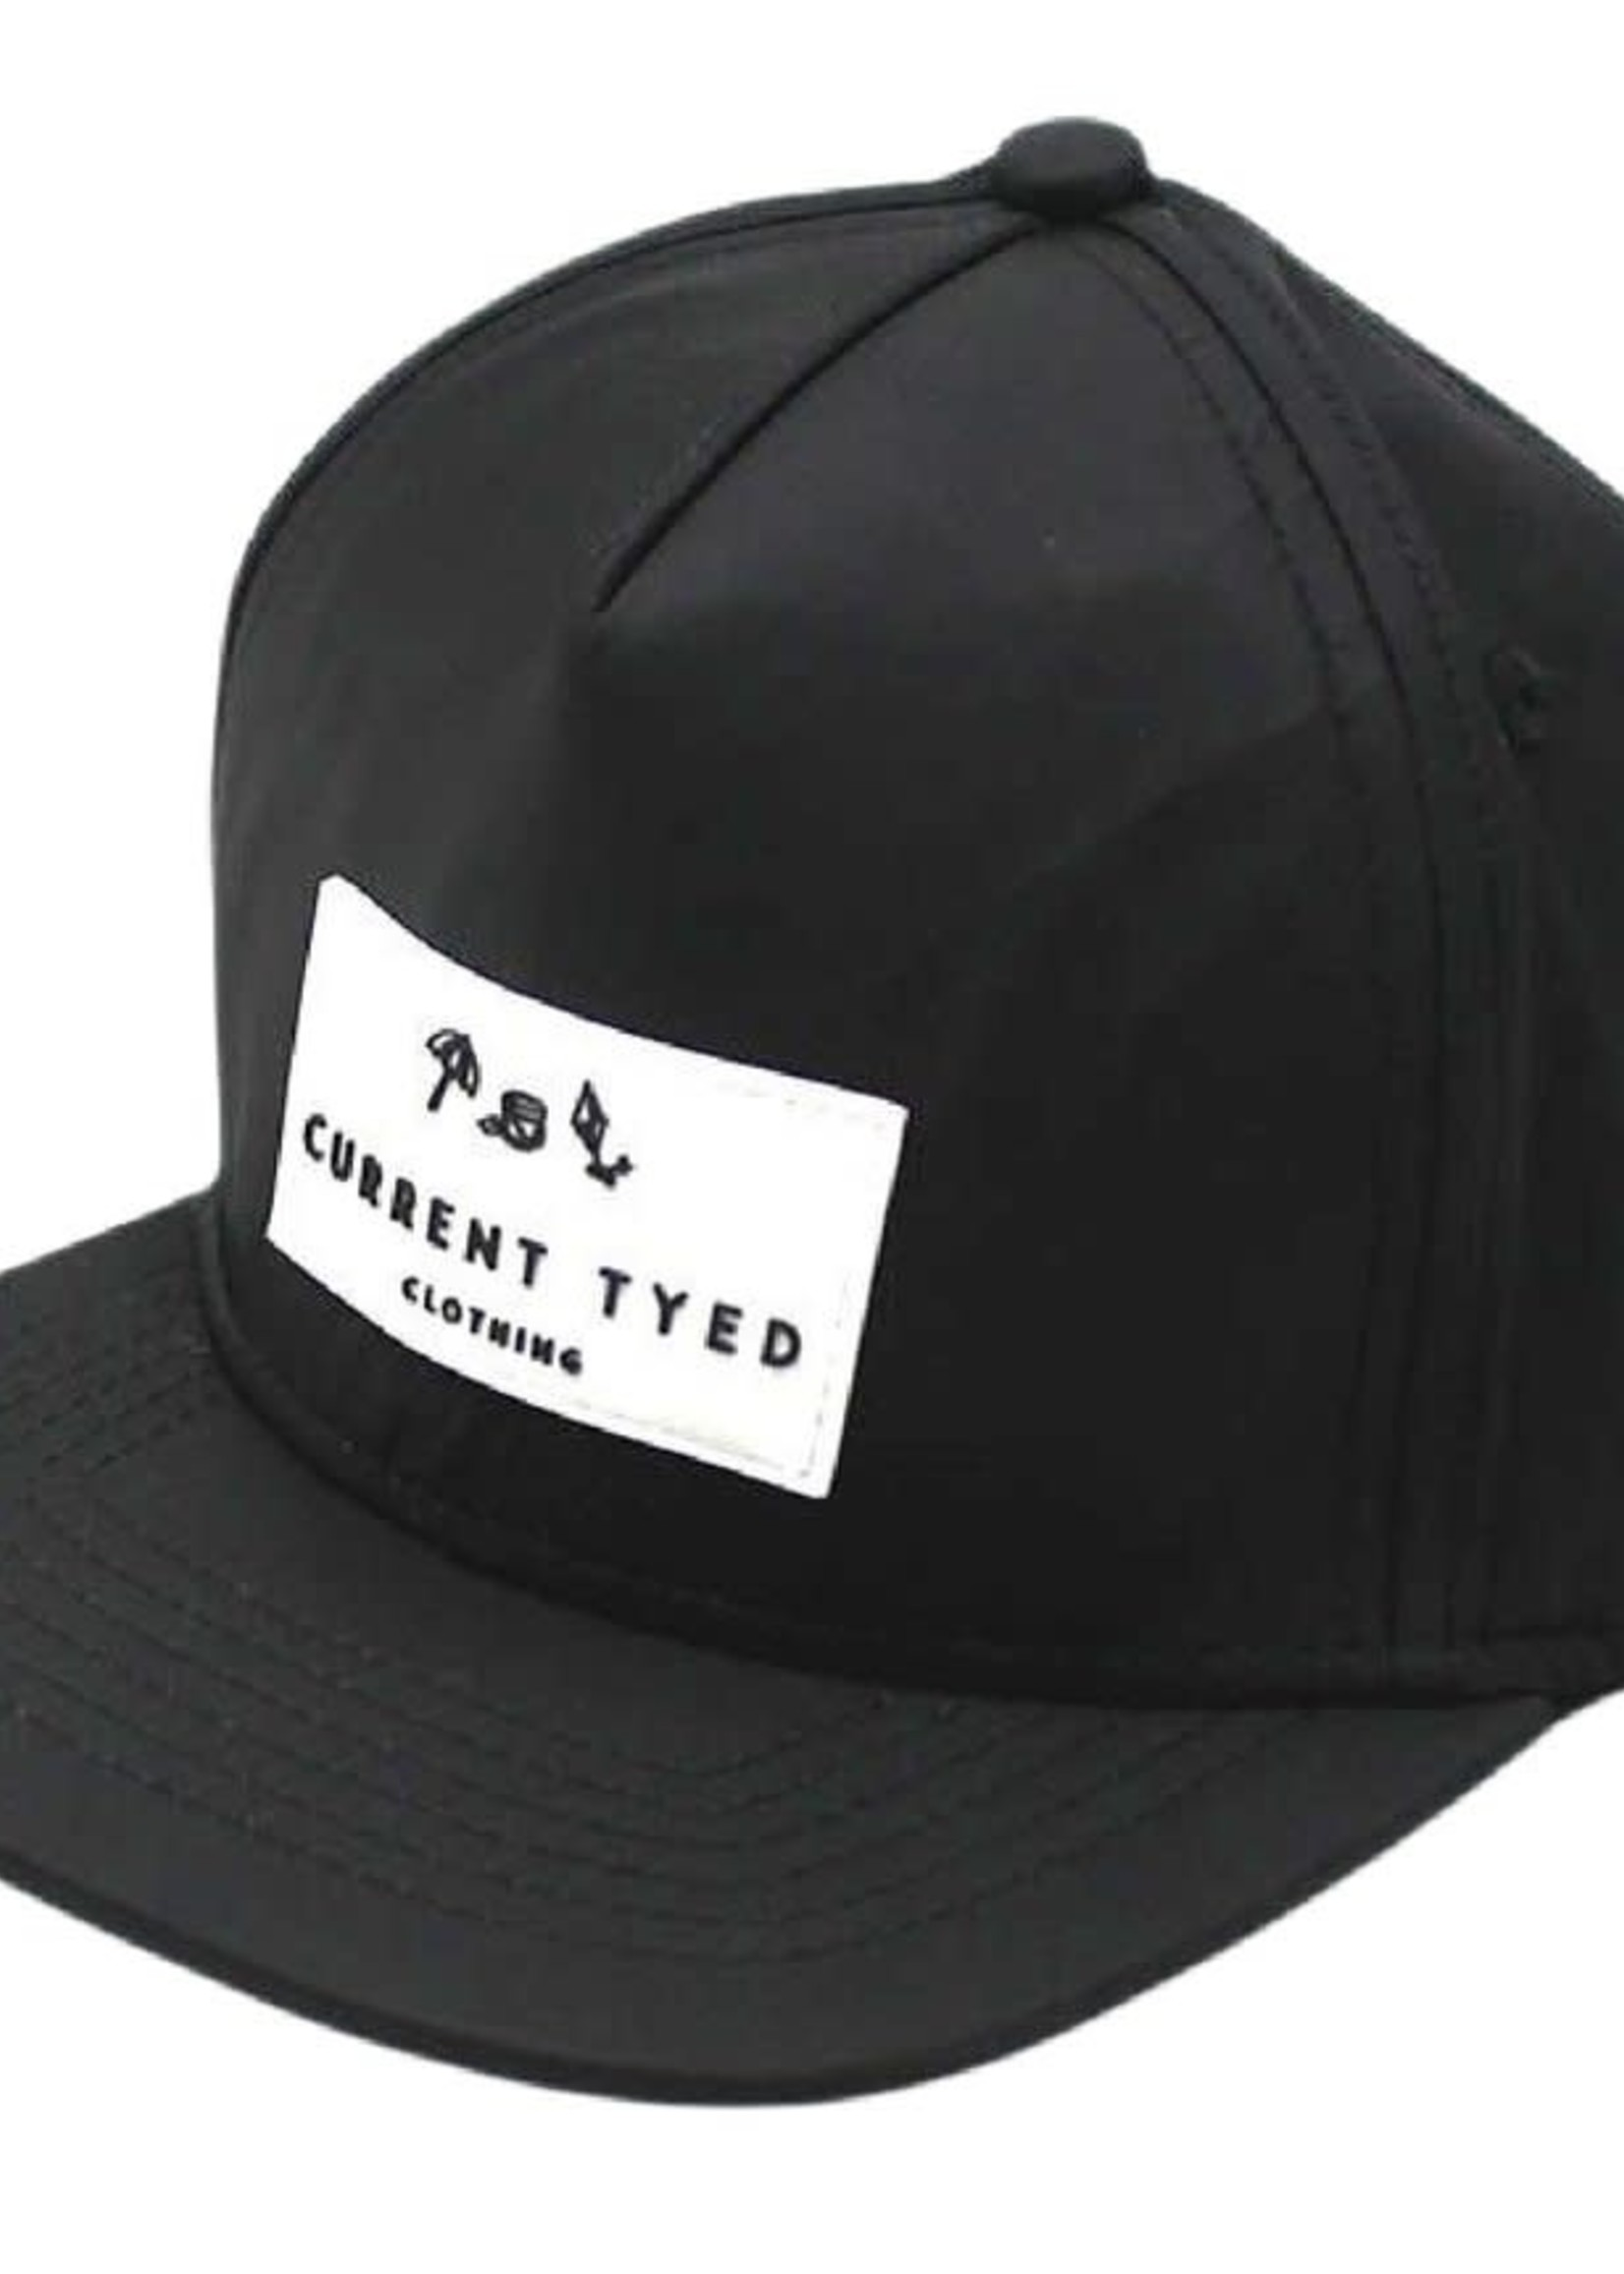 Current Tyed Current Tyed Waterproof Snapback (Black)